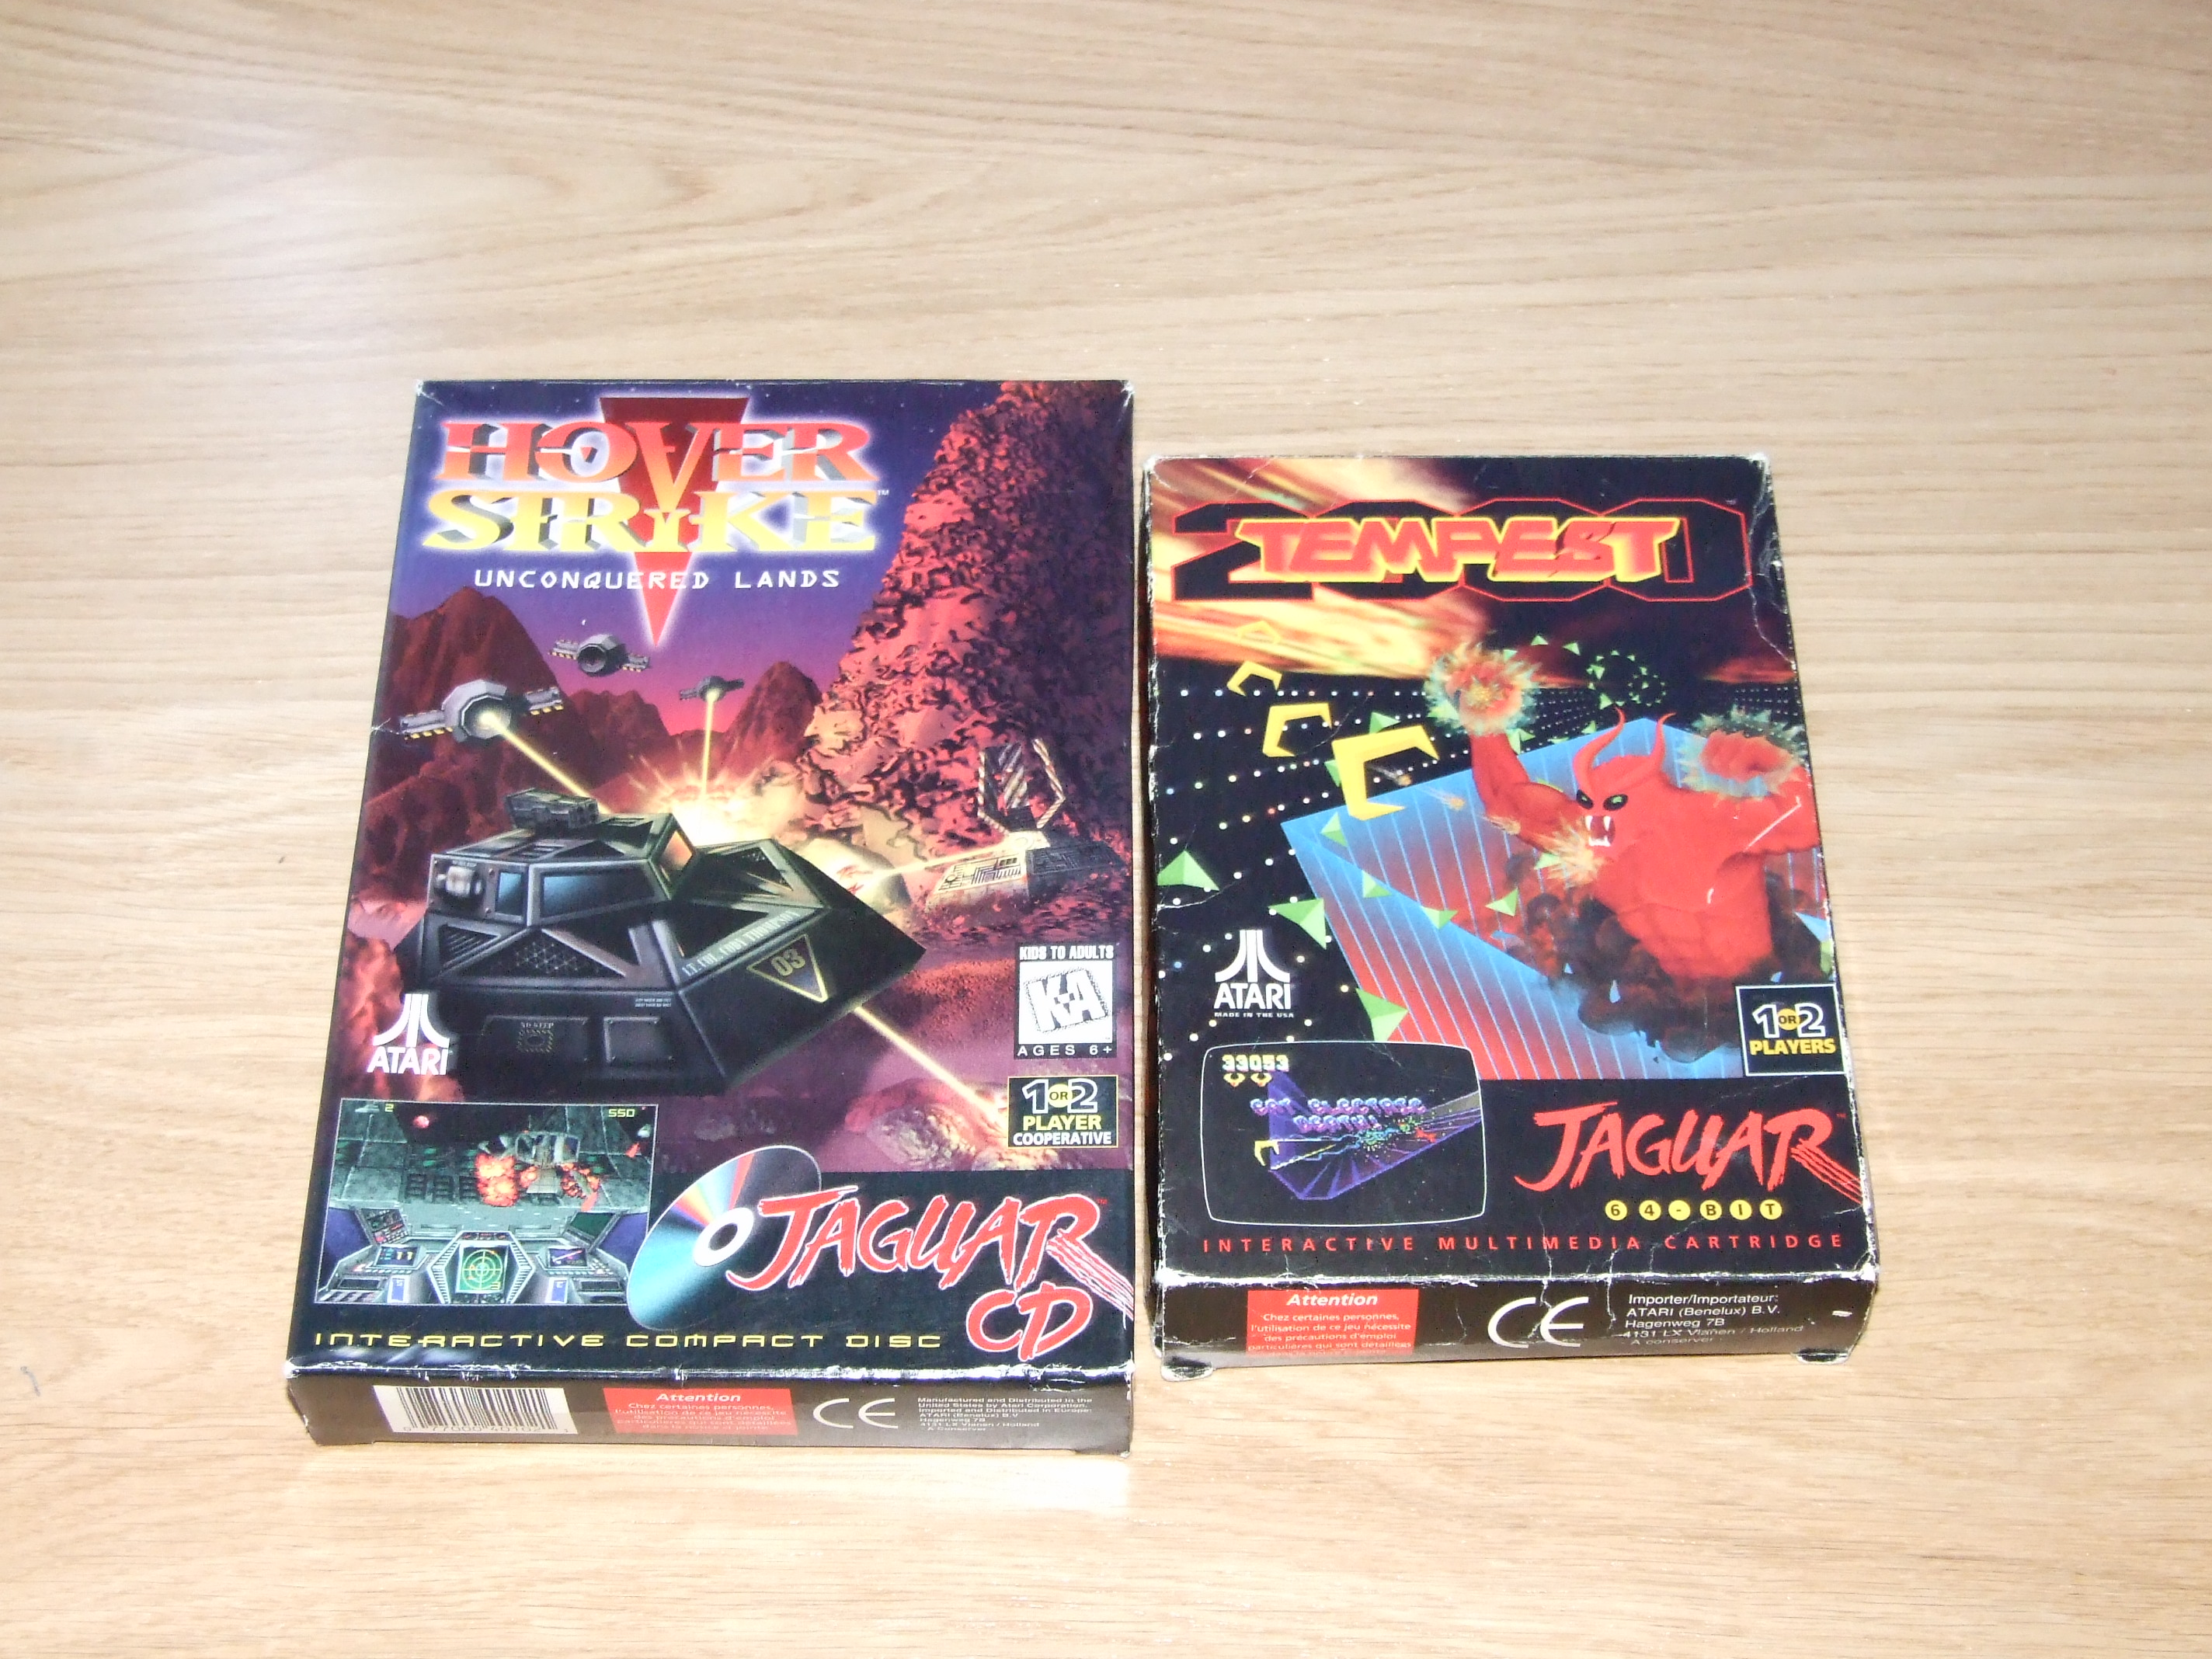 Hover Strike: Unconquered Lands for the Atari Jaguar CD box, compared with the box of Tempest 2000, side by side.